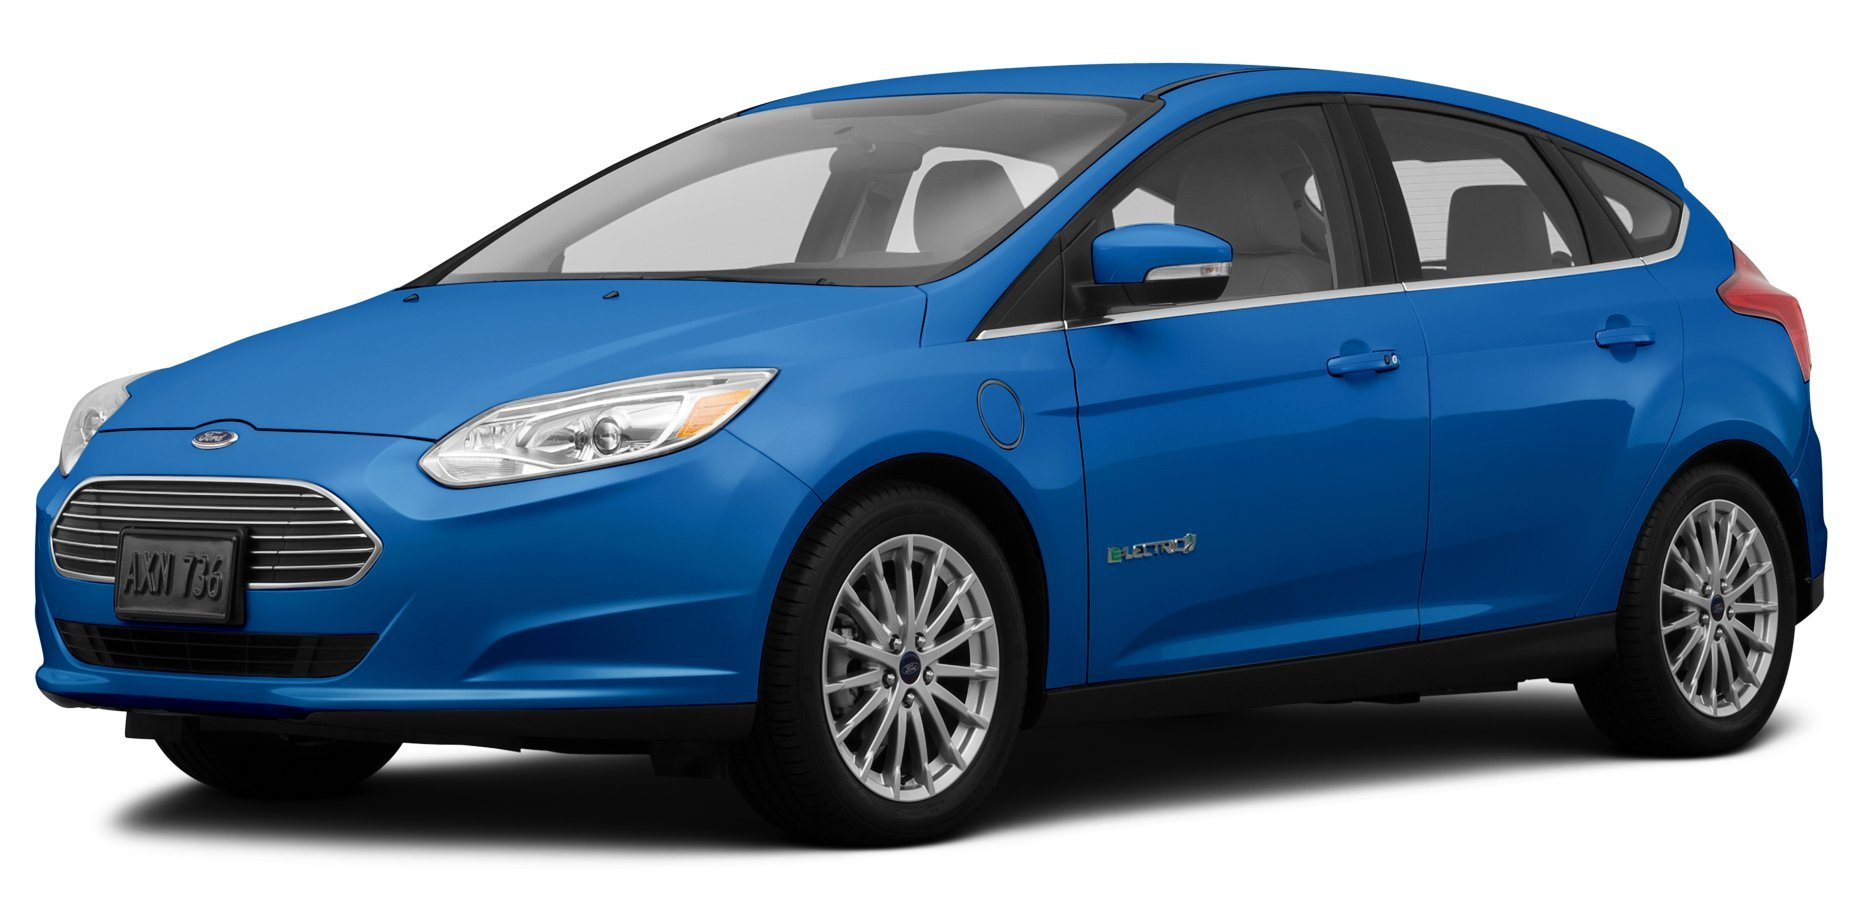 2014 ford focus reviews images and specs vehicles. Black Bedroom Furniture Sets. Home Design Ideas